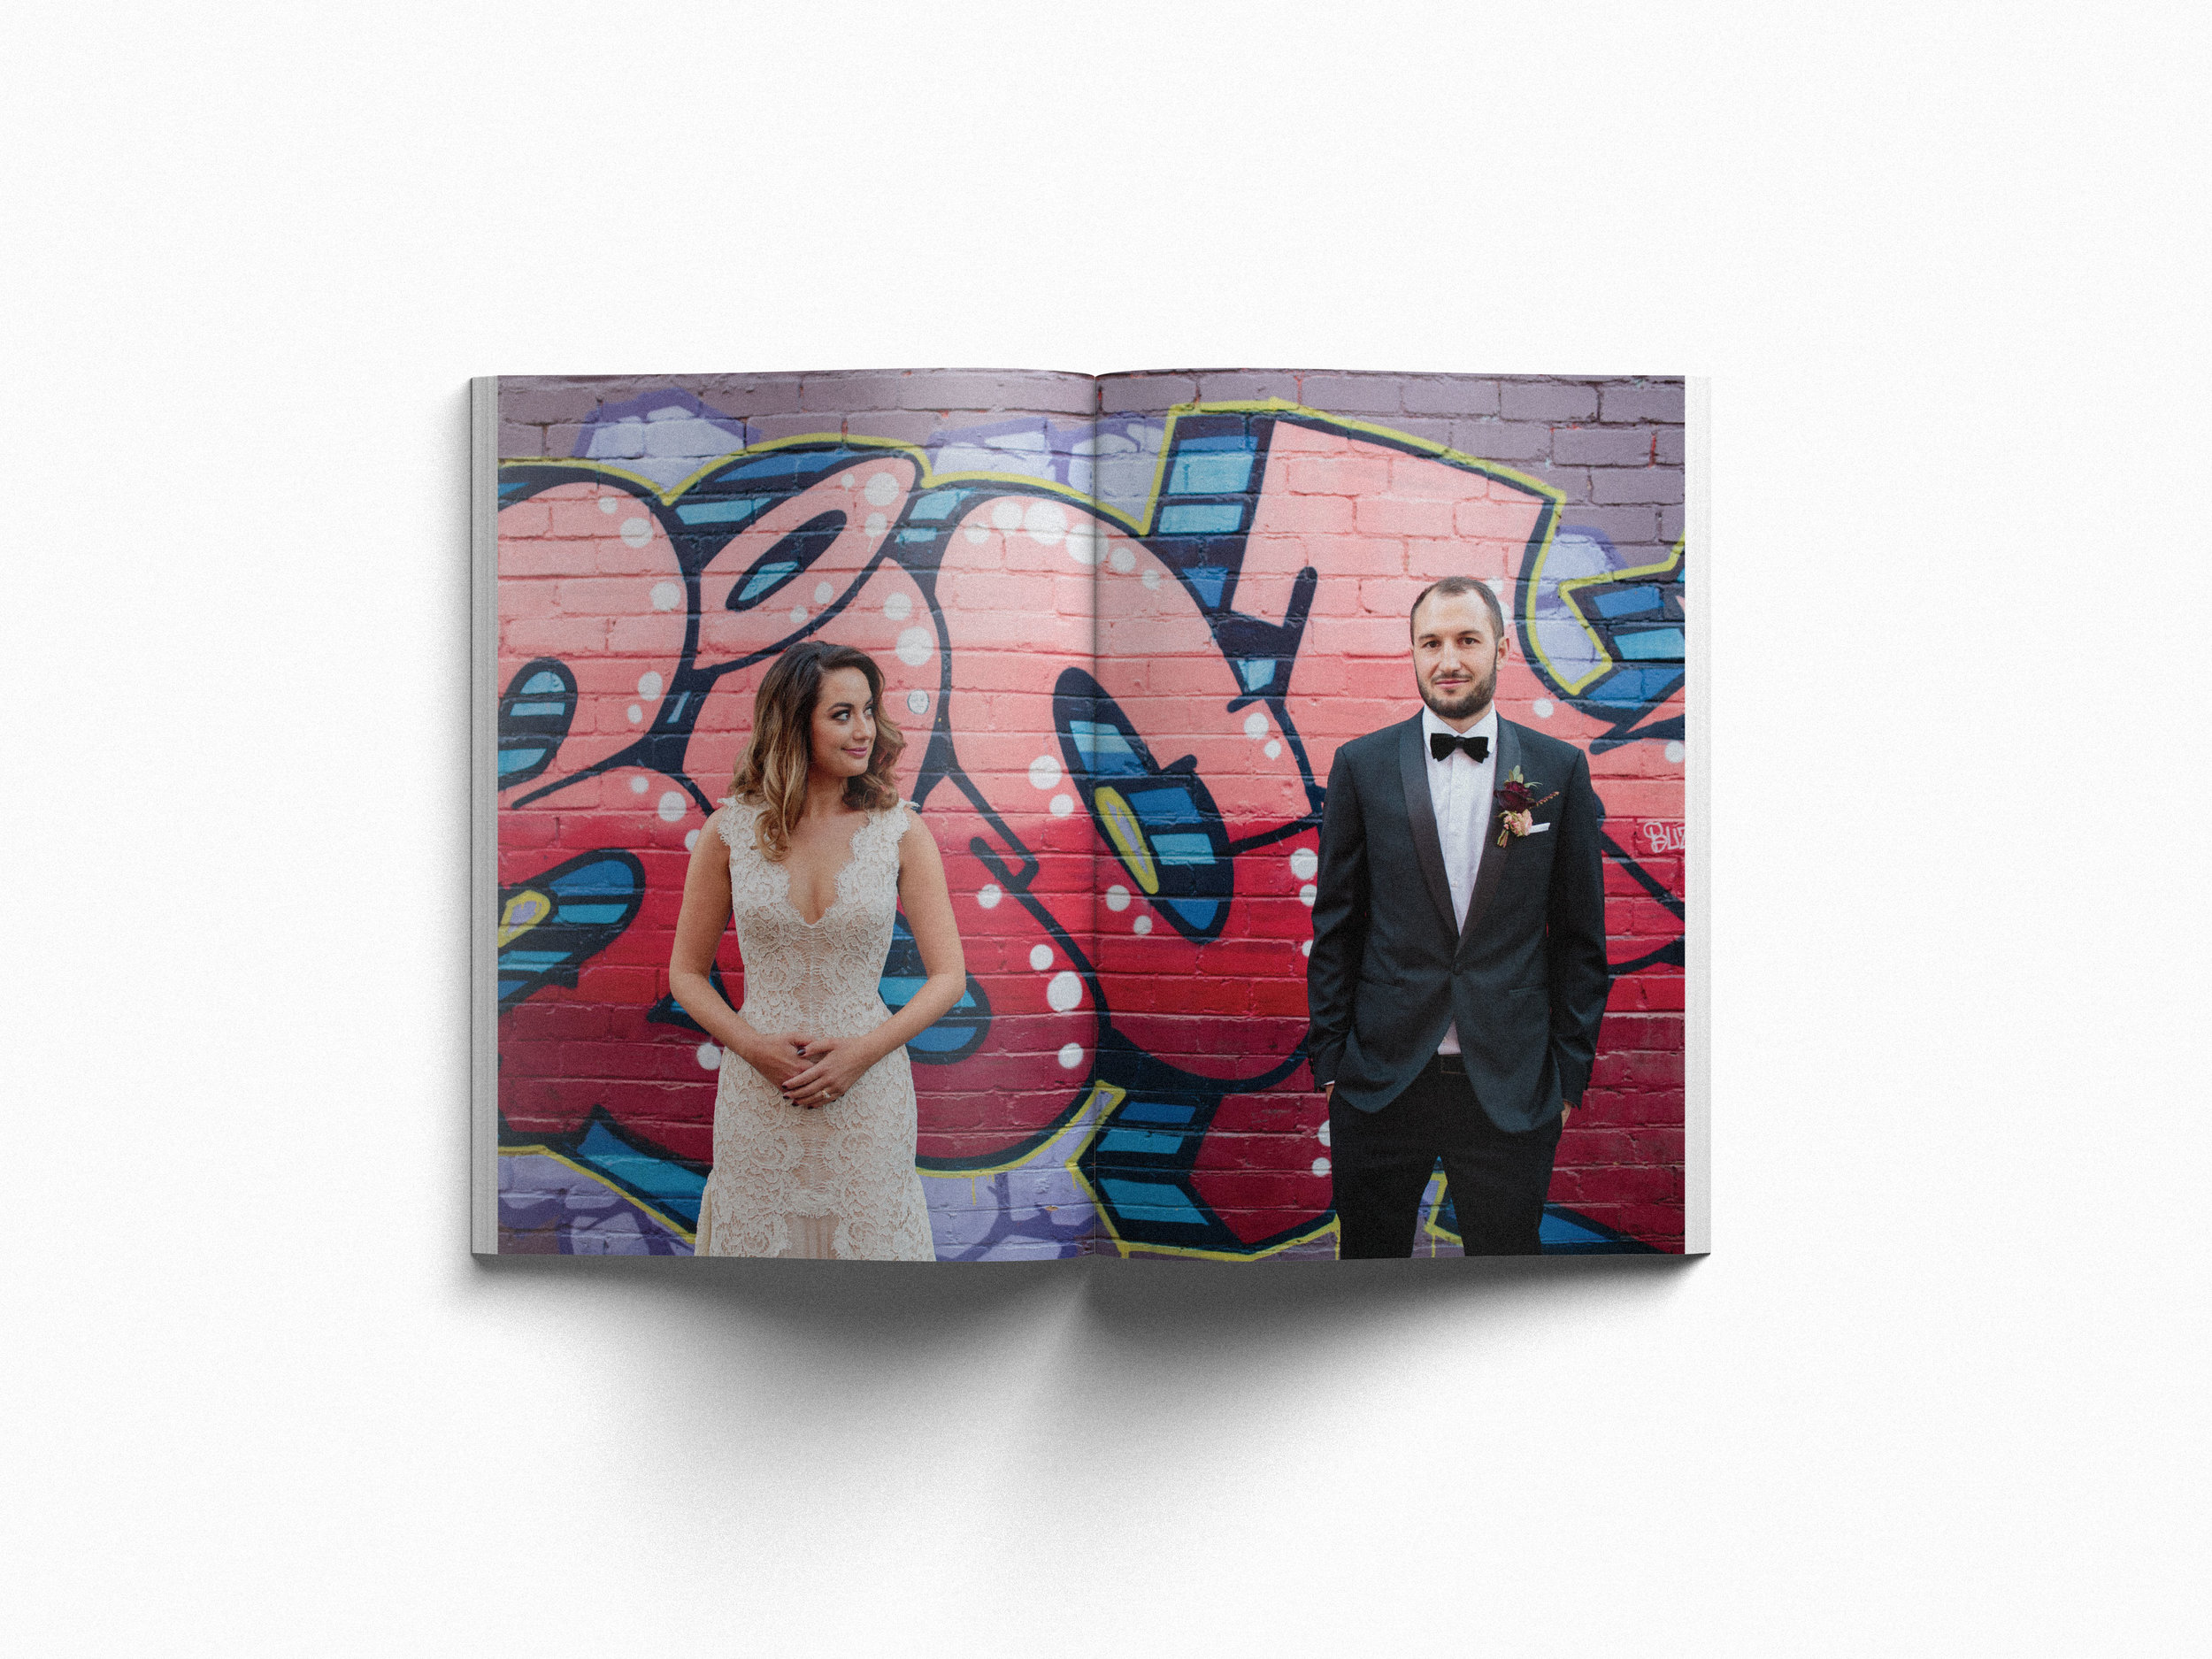 Sheridan-Nathan-Wedding-Zine-Internal-Page-2.png